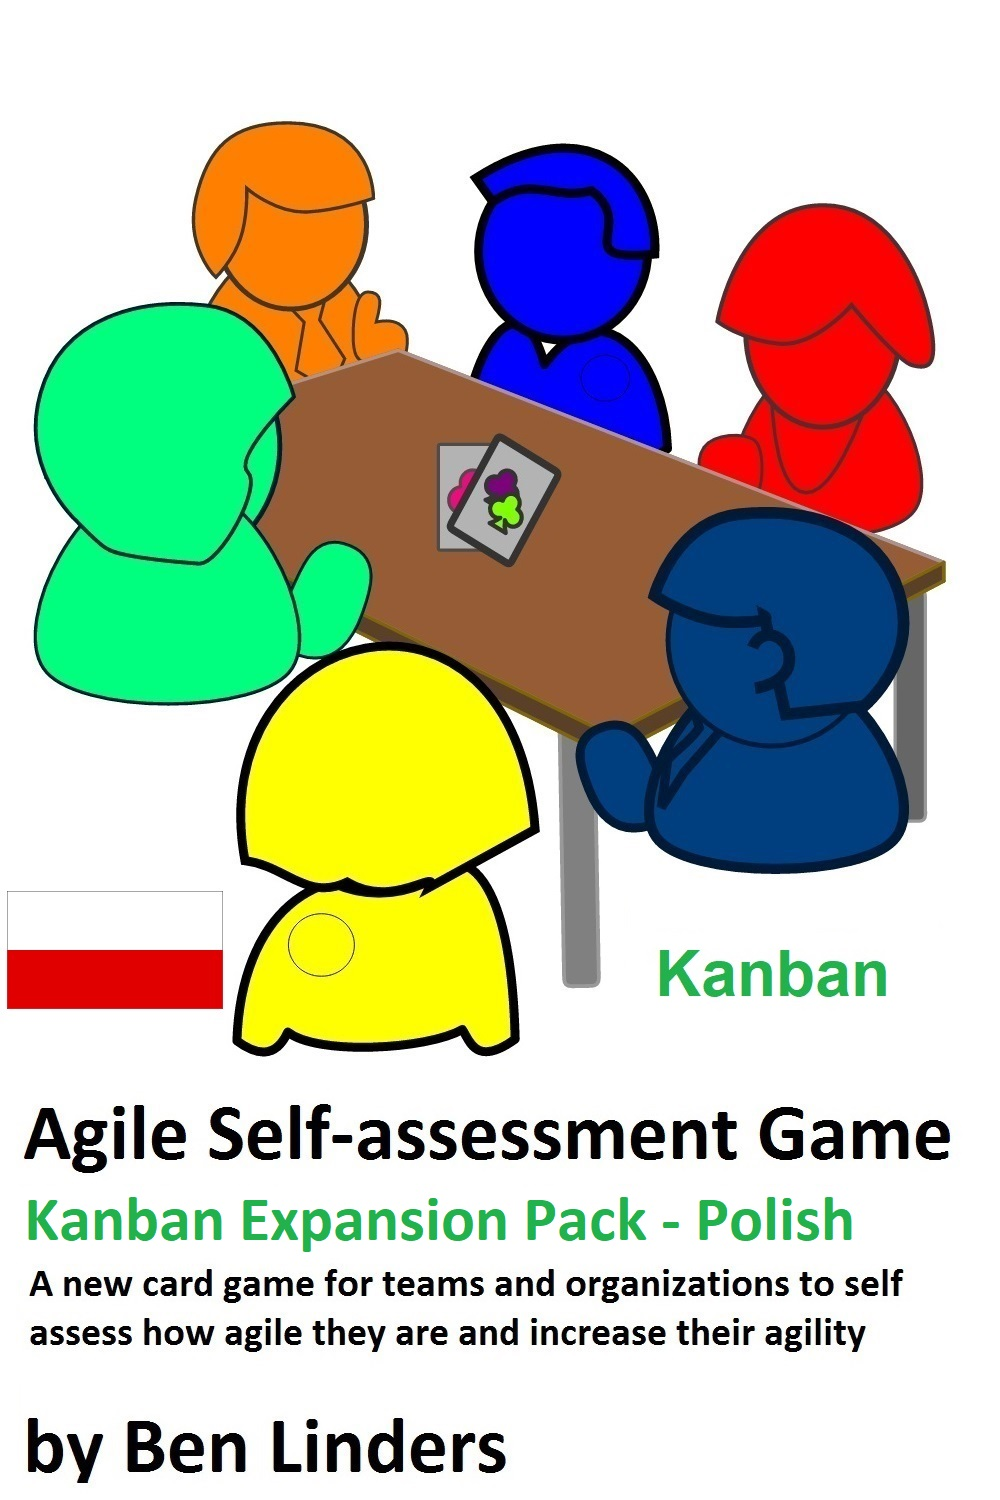 Kanban Expansion Pack for Agile Self-assessment Game – Polish edition